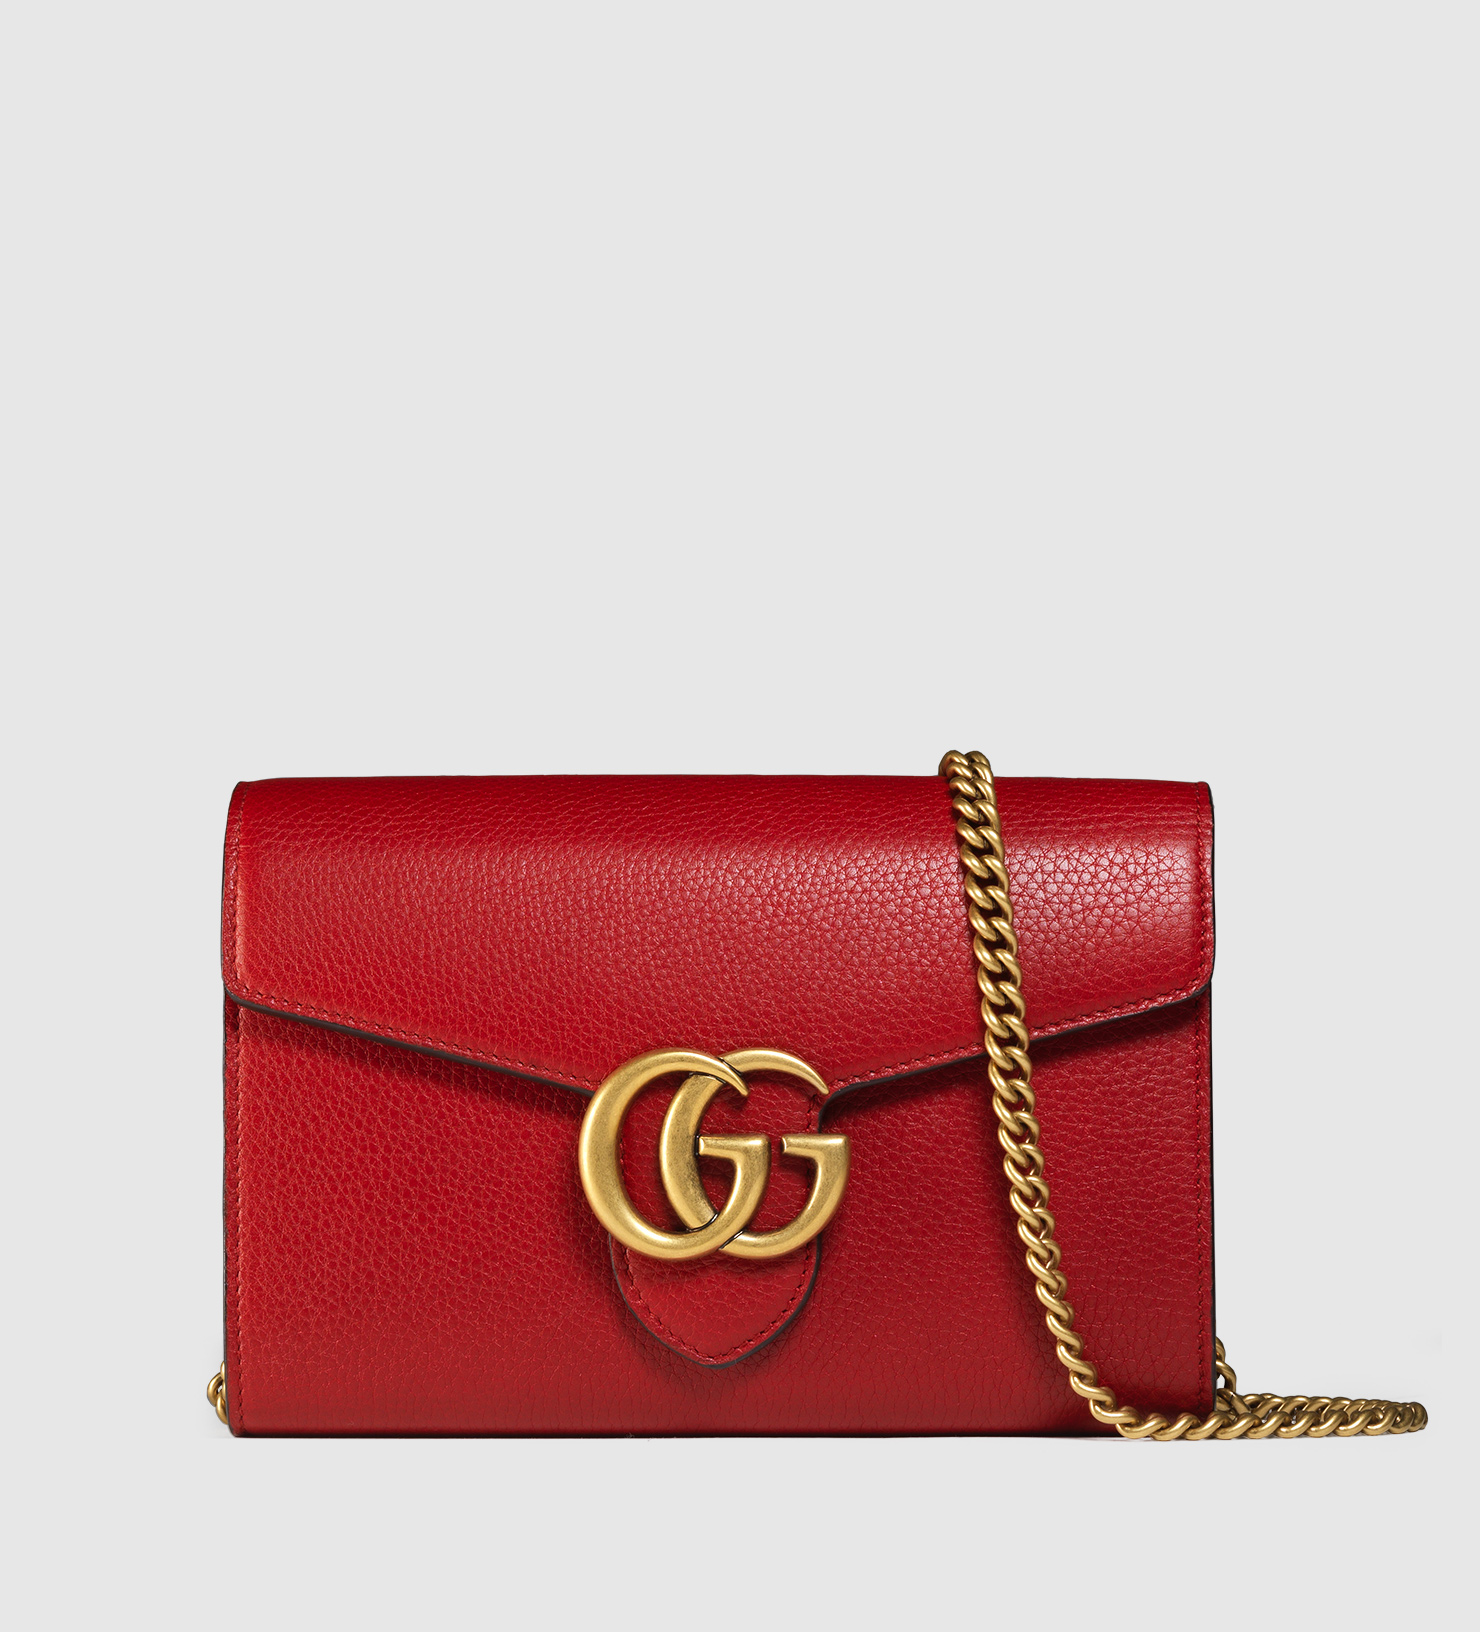 Lyst - Gucci Gg Marmont Leather Chain Wallet in Red 566cb2282ae91